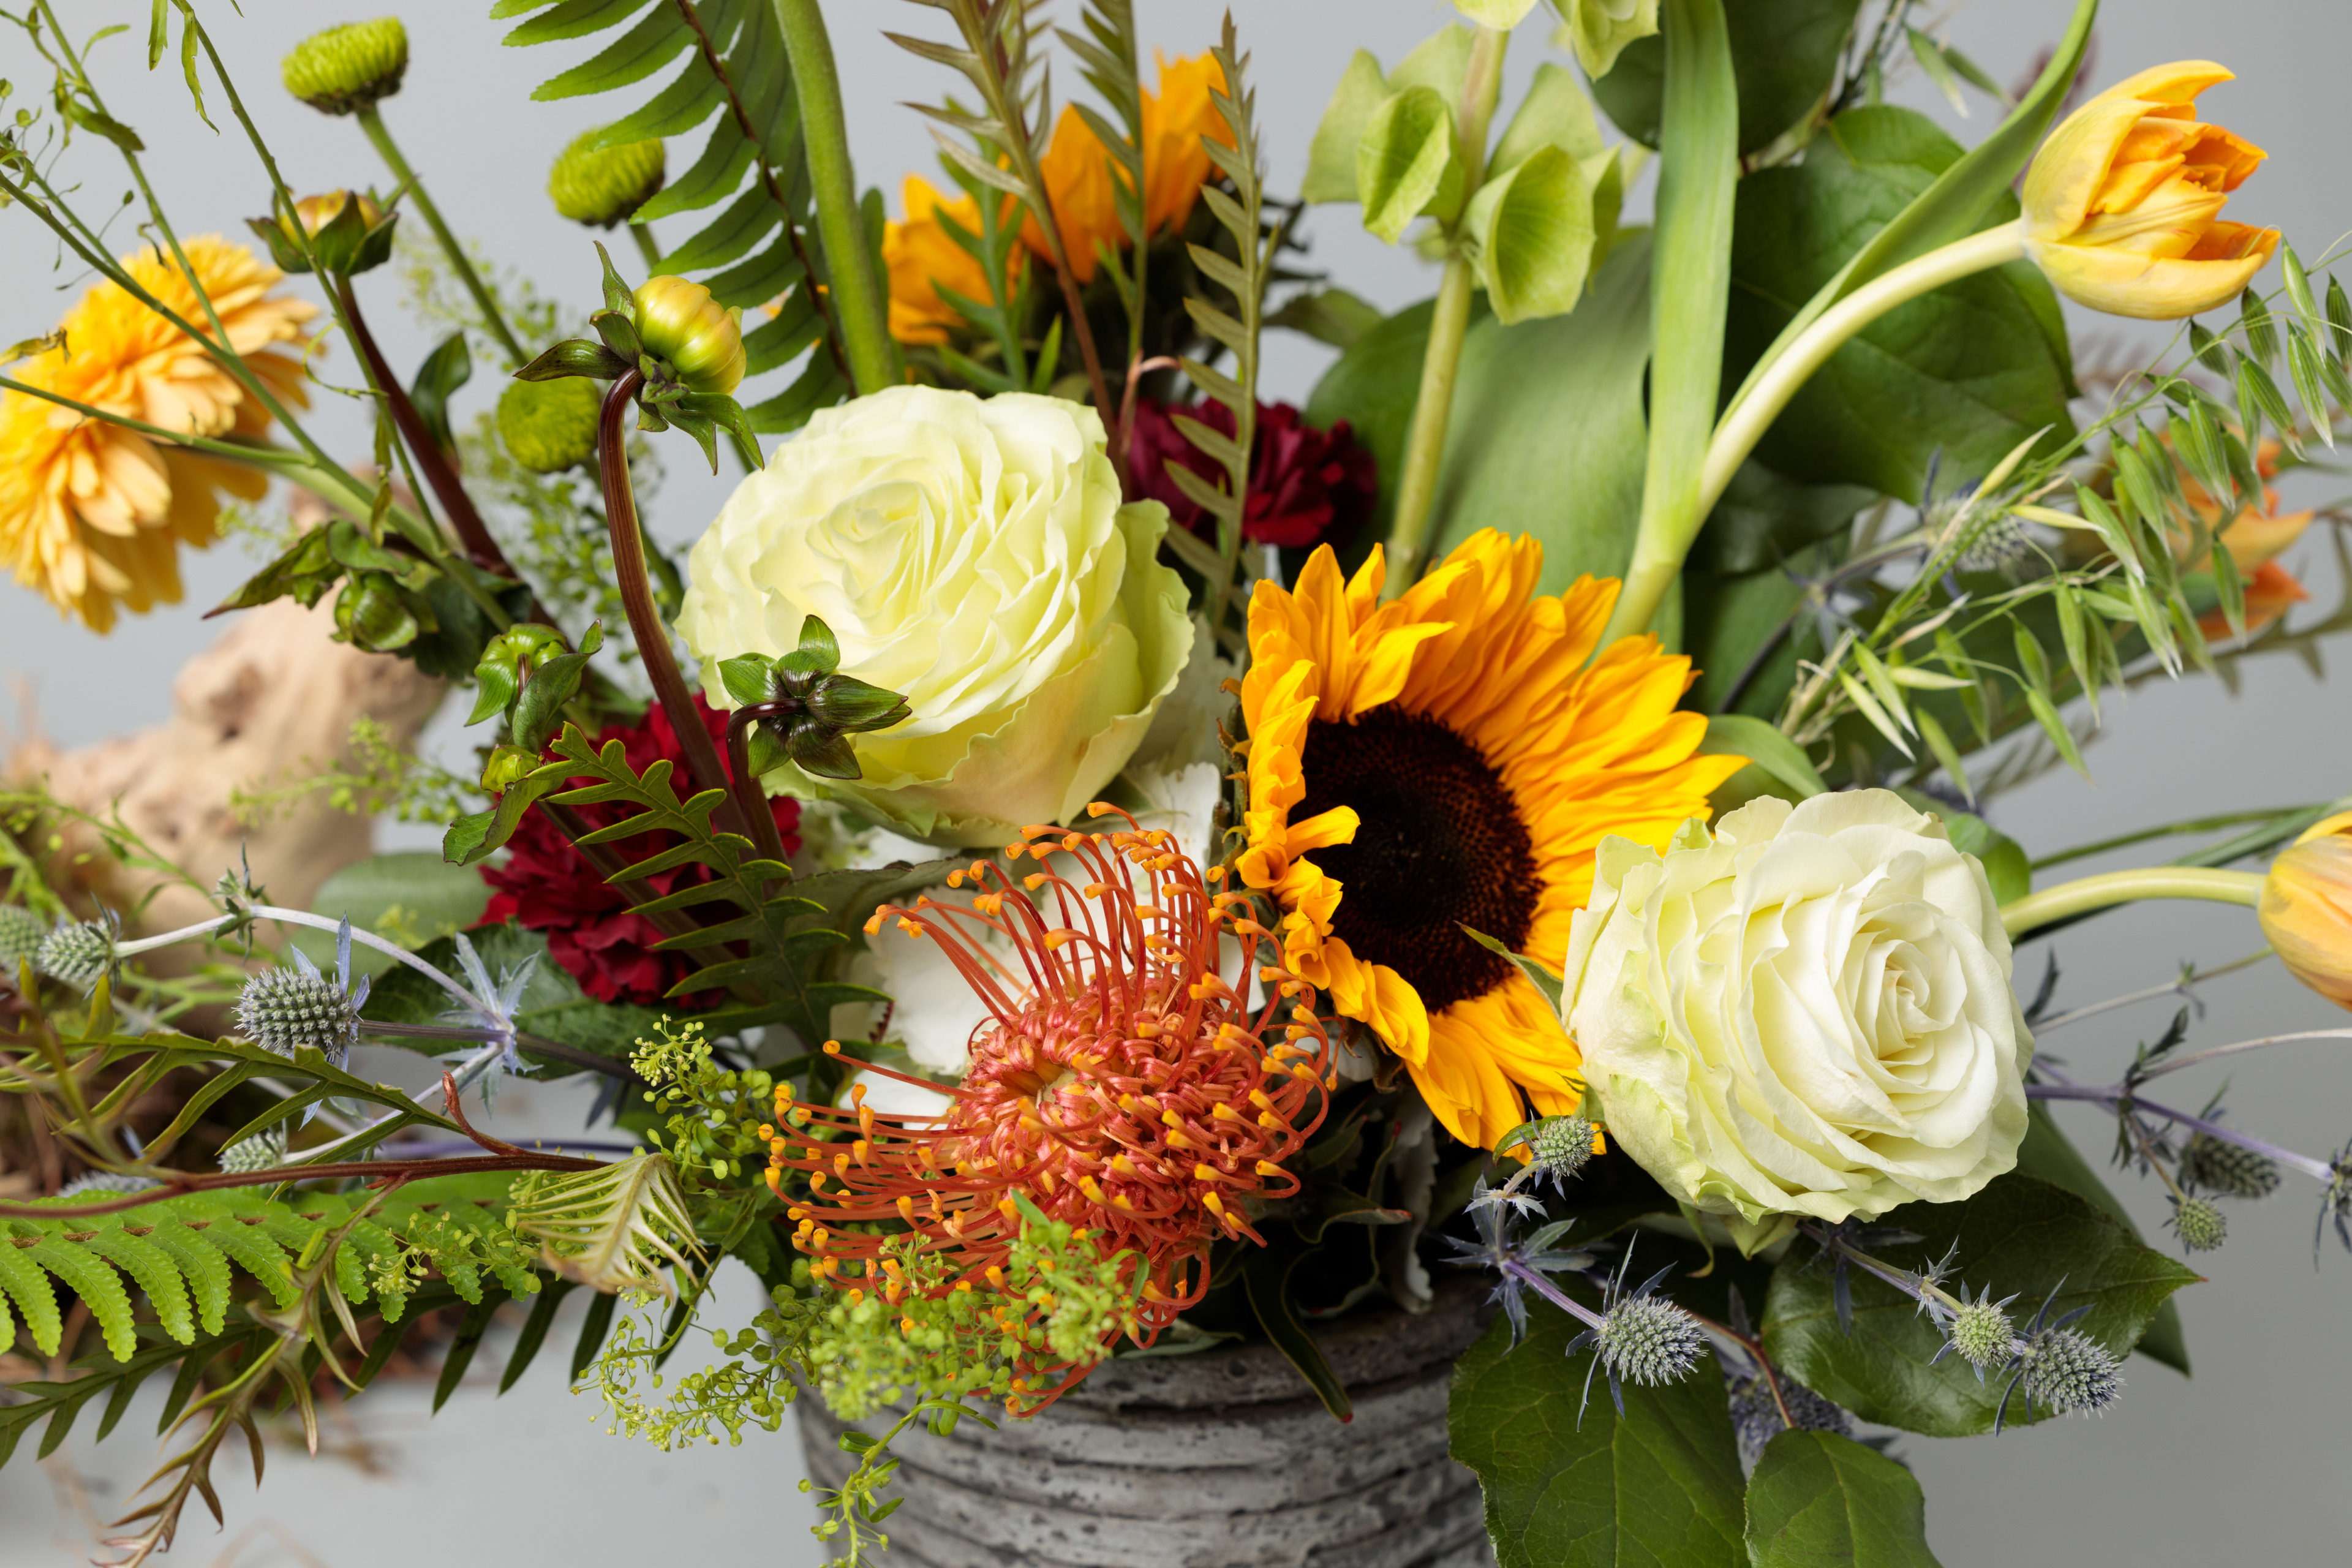 Designing with Fresh Flowers